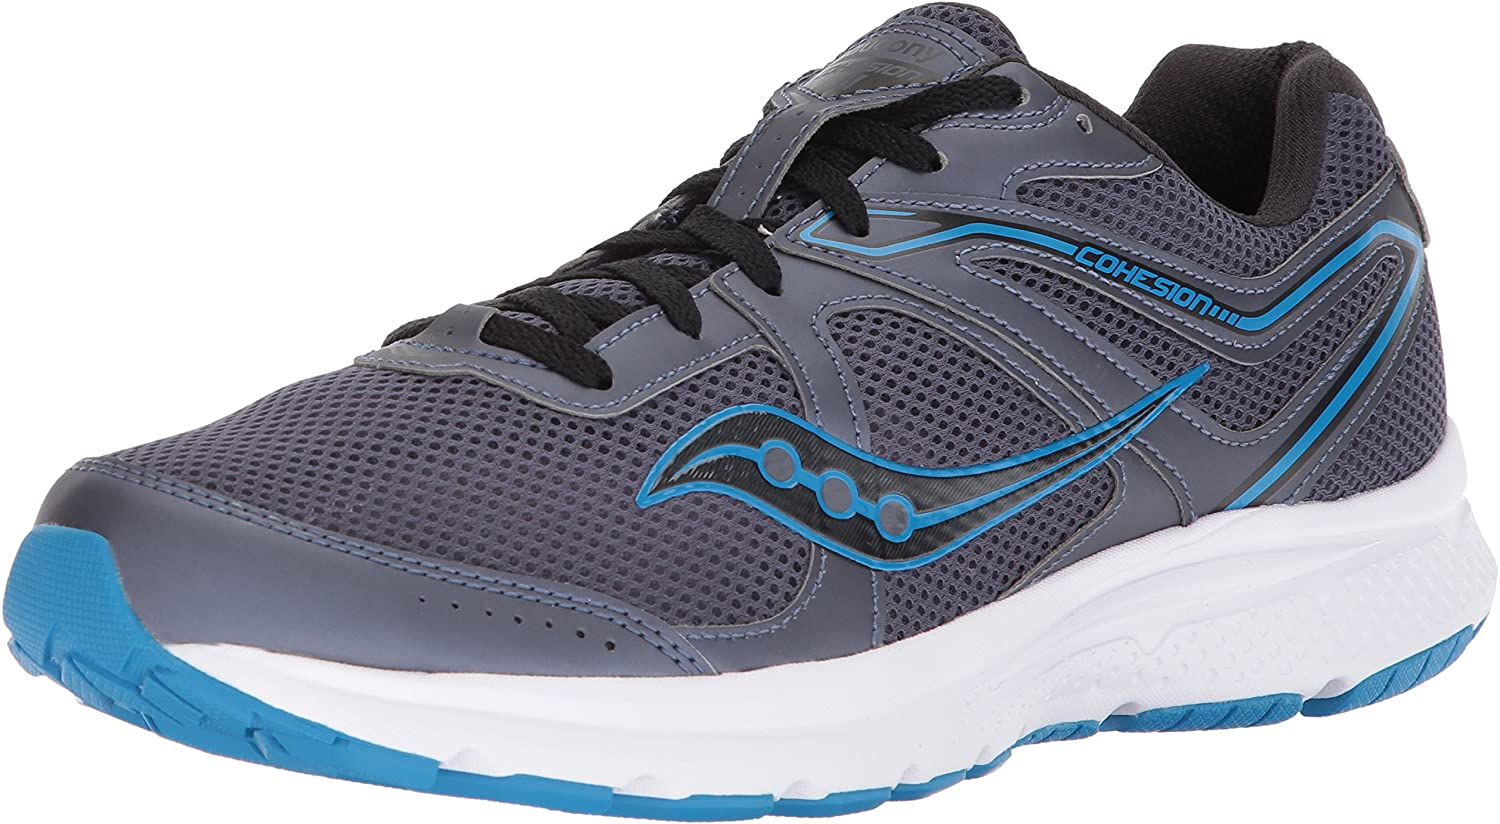 Saucony Men's Grid Cohesion 11 Running shoes